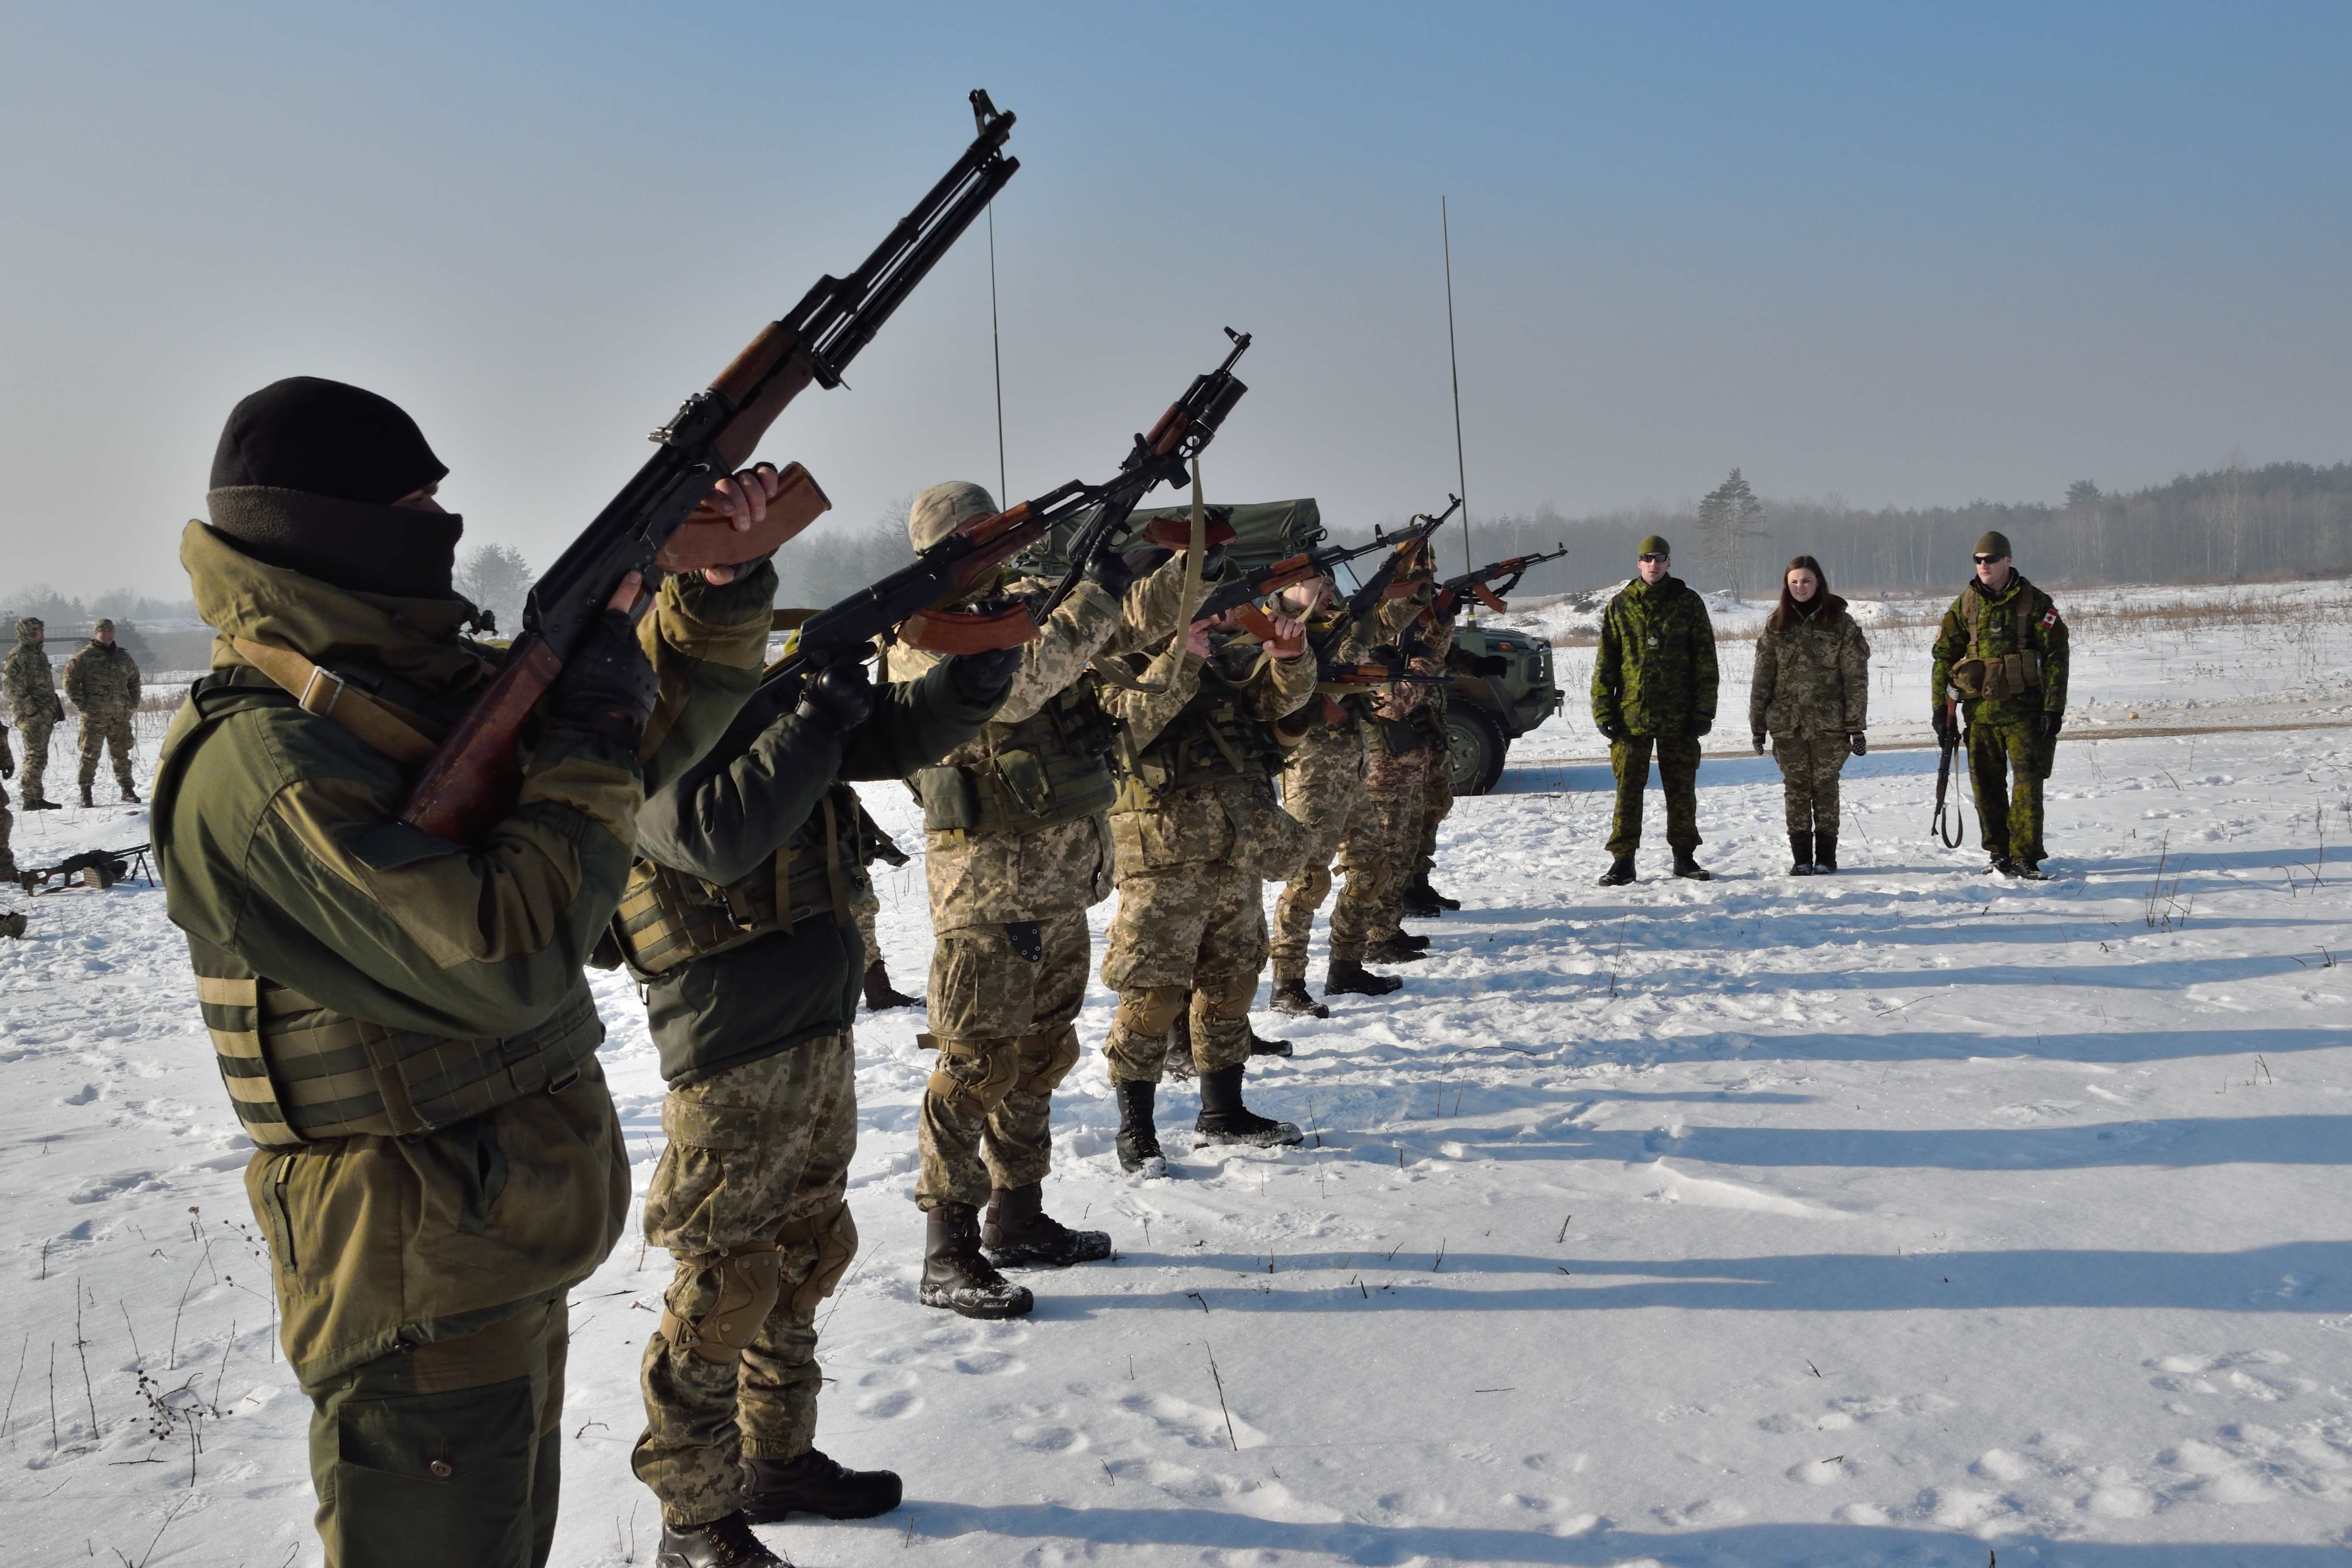 February 15, 2017. Ukrainian soldiers practice magazine loading technique under the guidance of Joint Task Force - Ukraine small team training instructors during Operation UNIFIER at the International Peacekeeping and Security Centre in Starychi, Ukraine on February 15, 2017. (Photo: Joint Task Force – Ukraine)